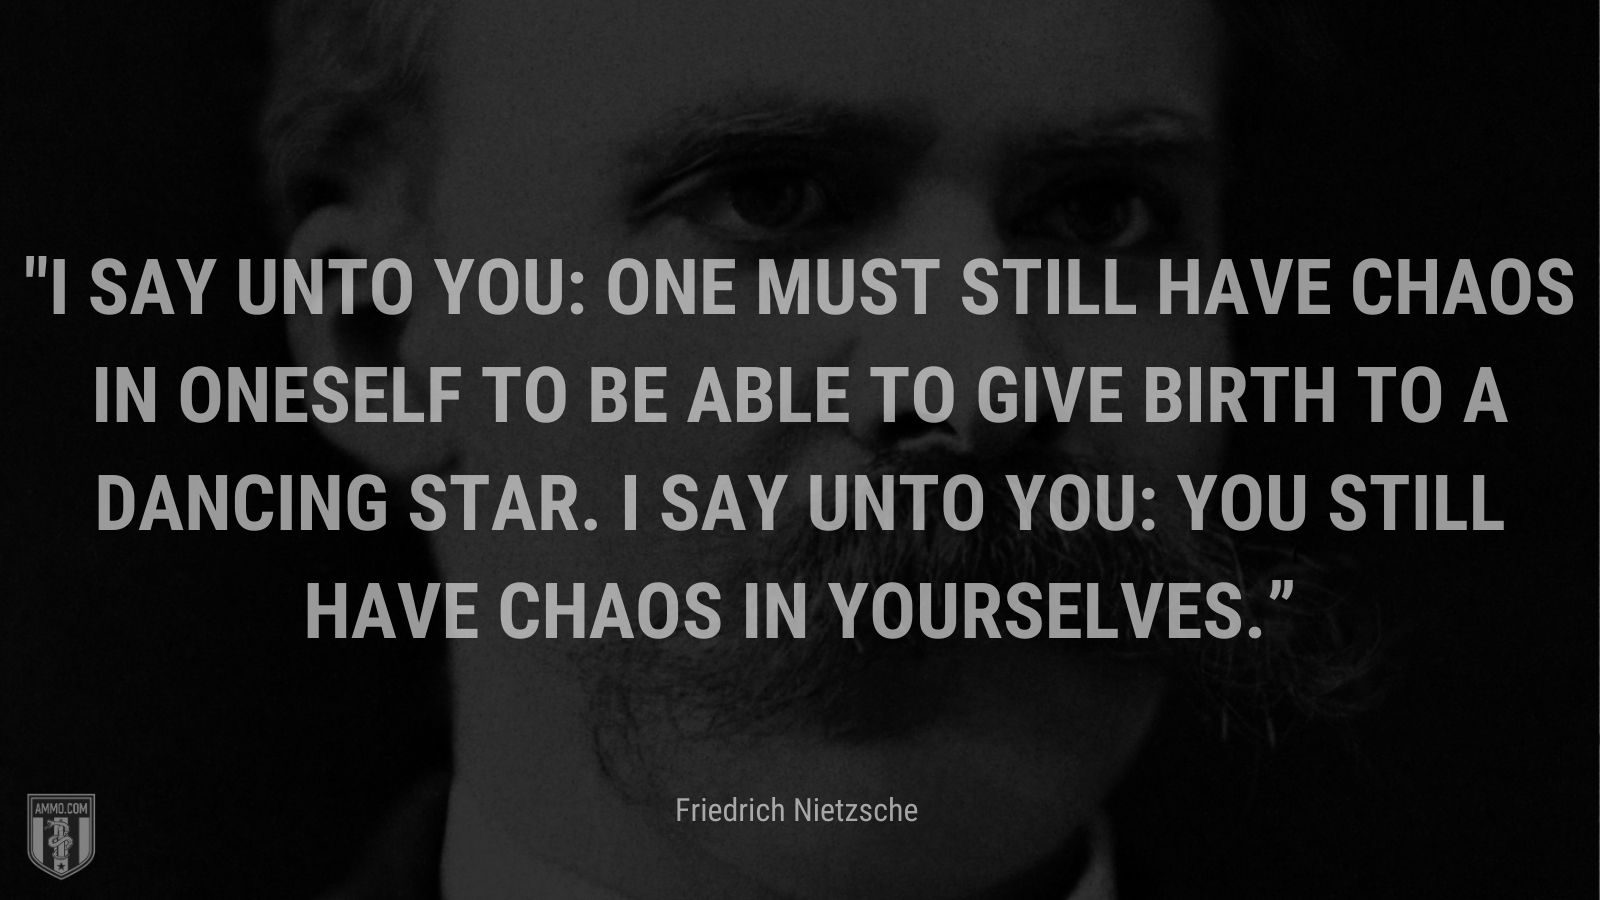 """""""I say unto you: one must still have chaos in oneself to be able to give birth to a dancing star. I say unto you: you still have chaos in yourselves."""" - Friedrich Nietzsche"""